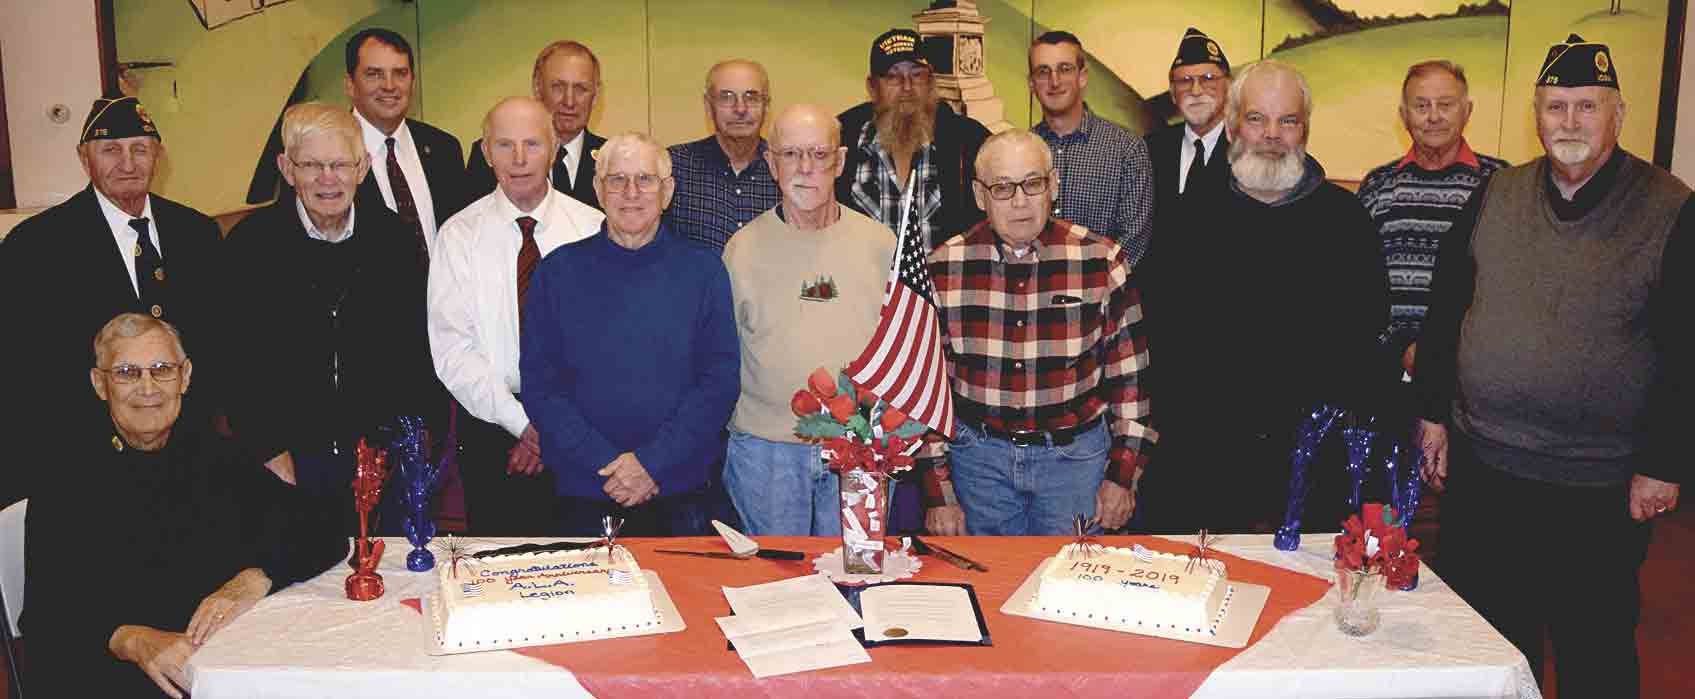 Clermont Legion Post 375 celebrated its 100th Anniversary Monday evening with a joint banquet with the ladies auxiliary at the Clermont Opera House. Enjoying the celebration were seated Richard Barnes; standing (l-r) Kenny Kohls, Bob Swenson, State Representative Michael Bergan, Bob Fassbinder,...